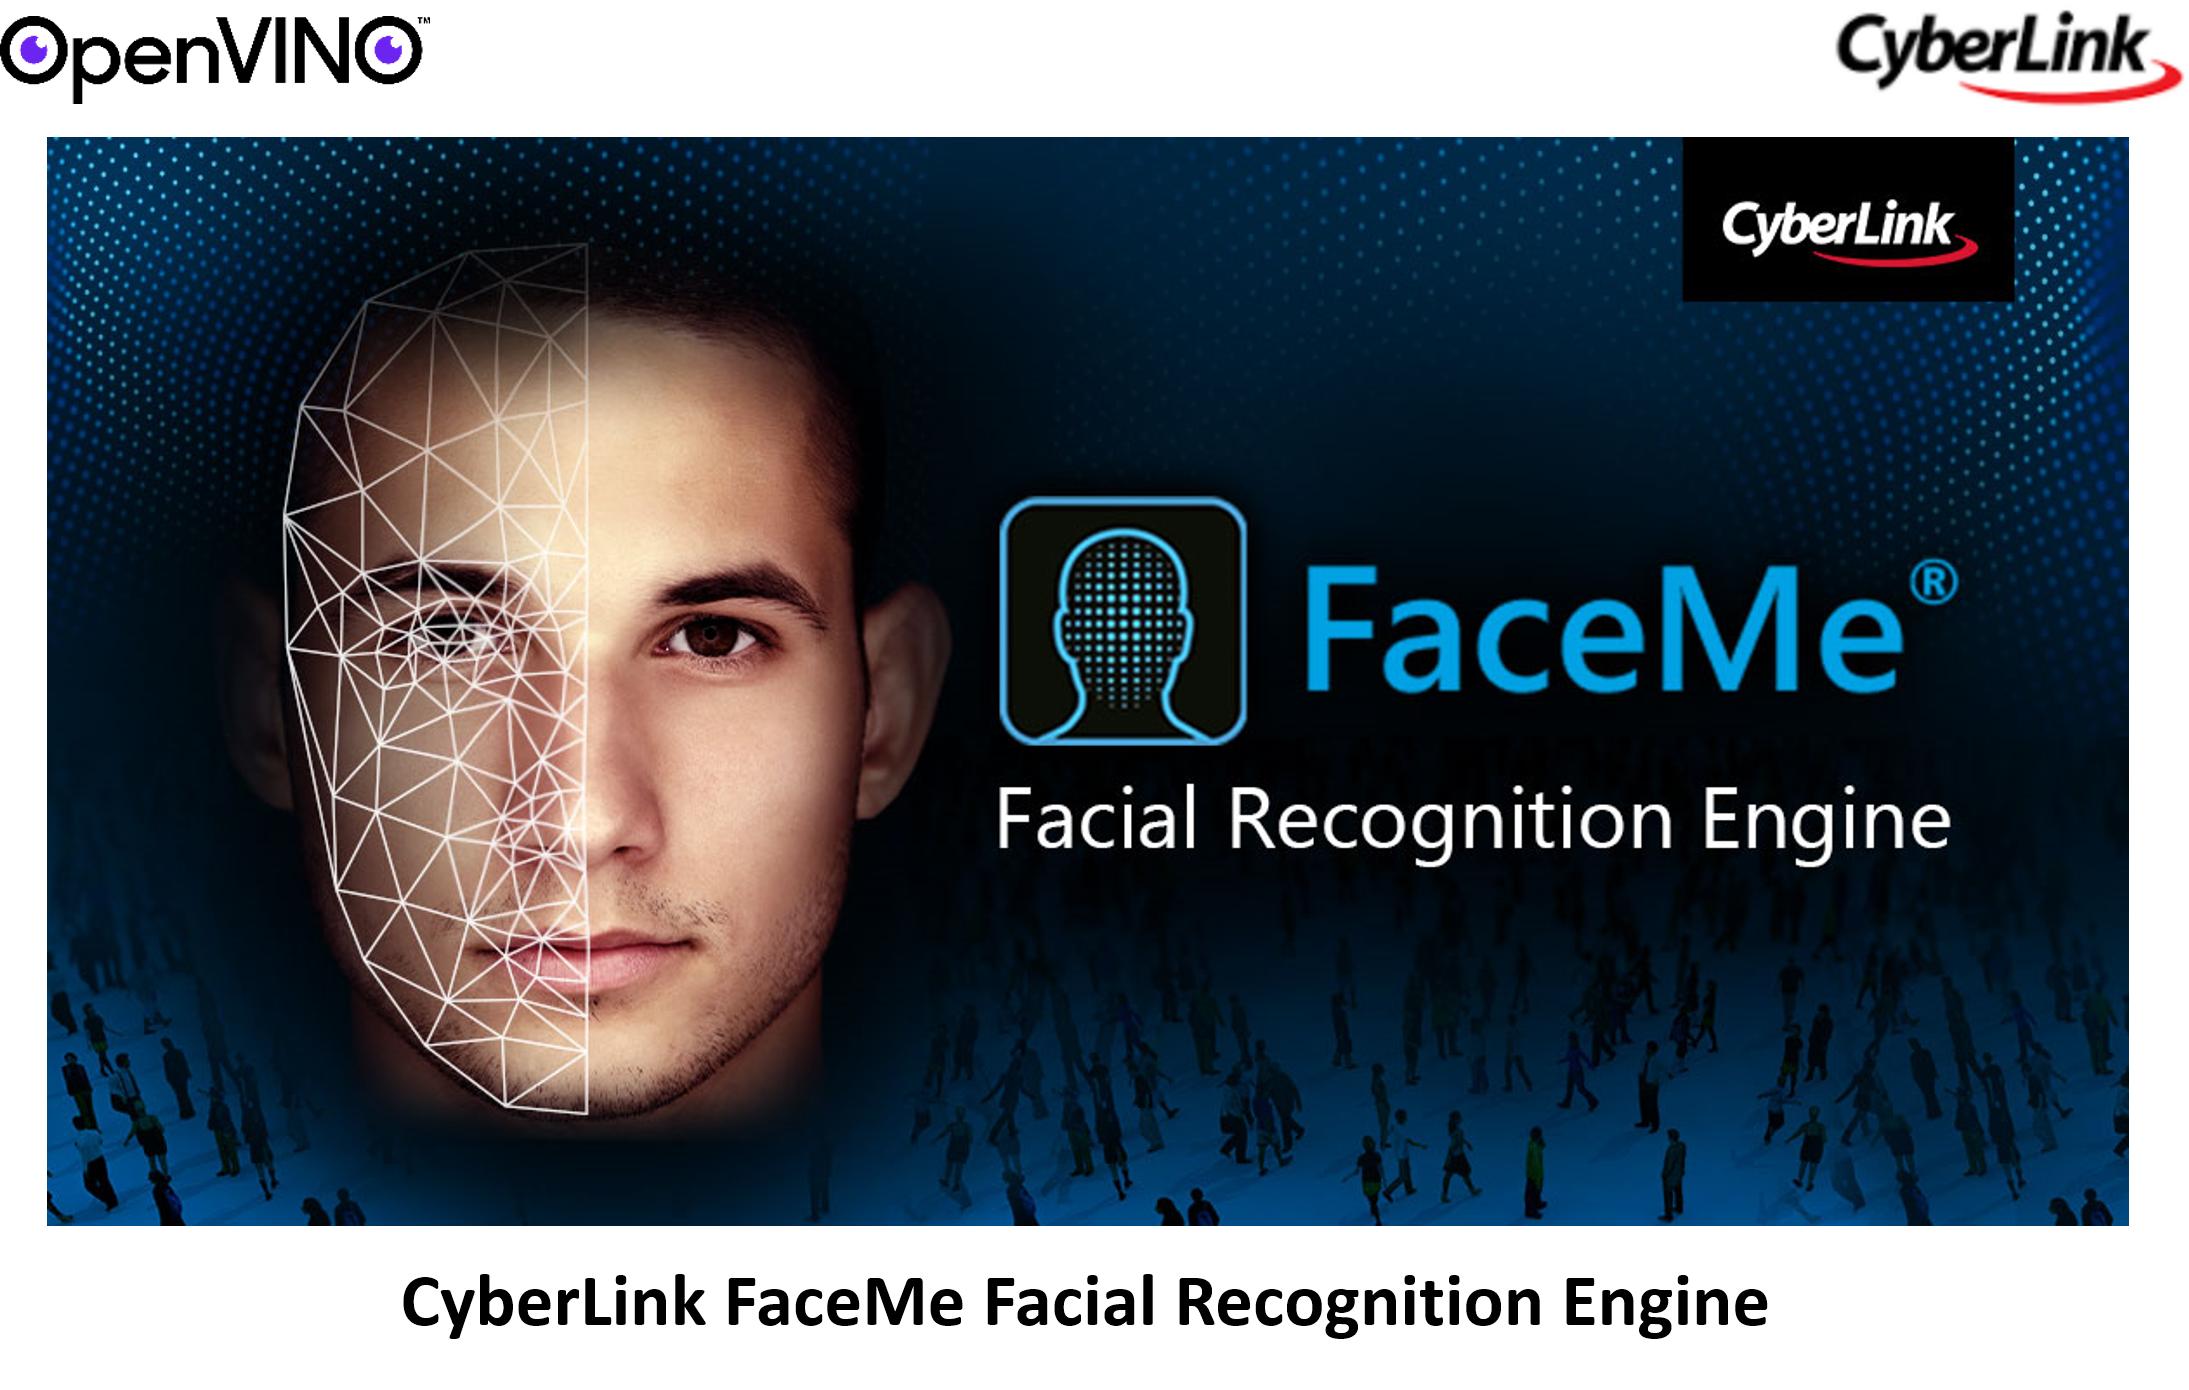 CyberLink FaceMe Facial Recognition Engine